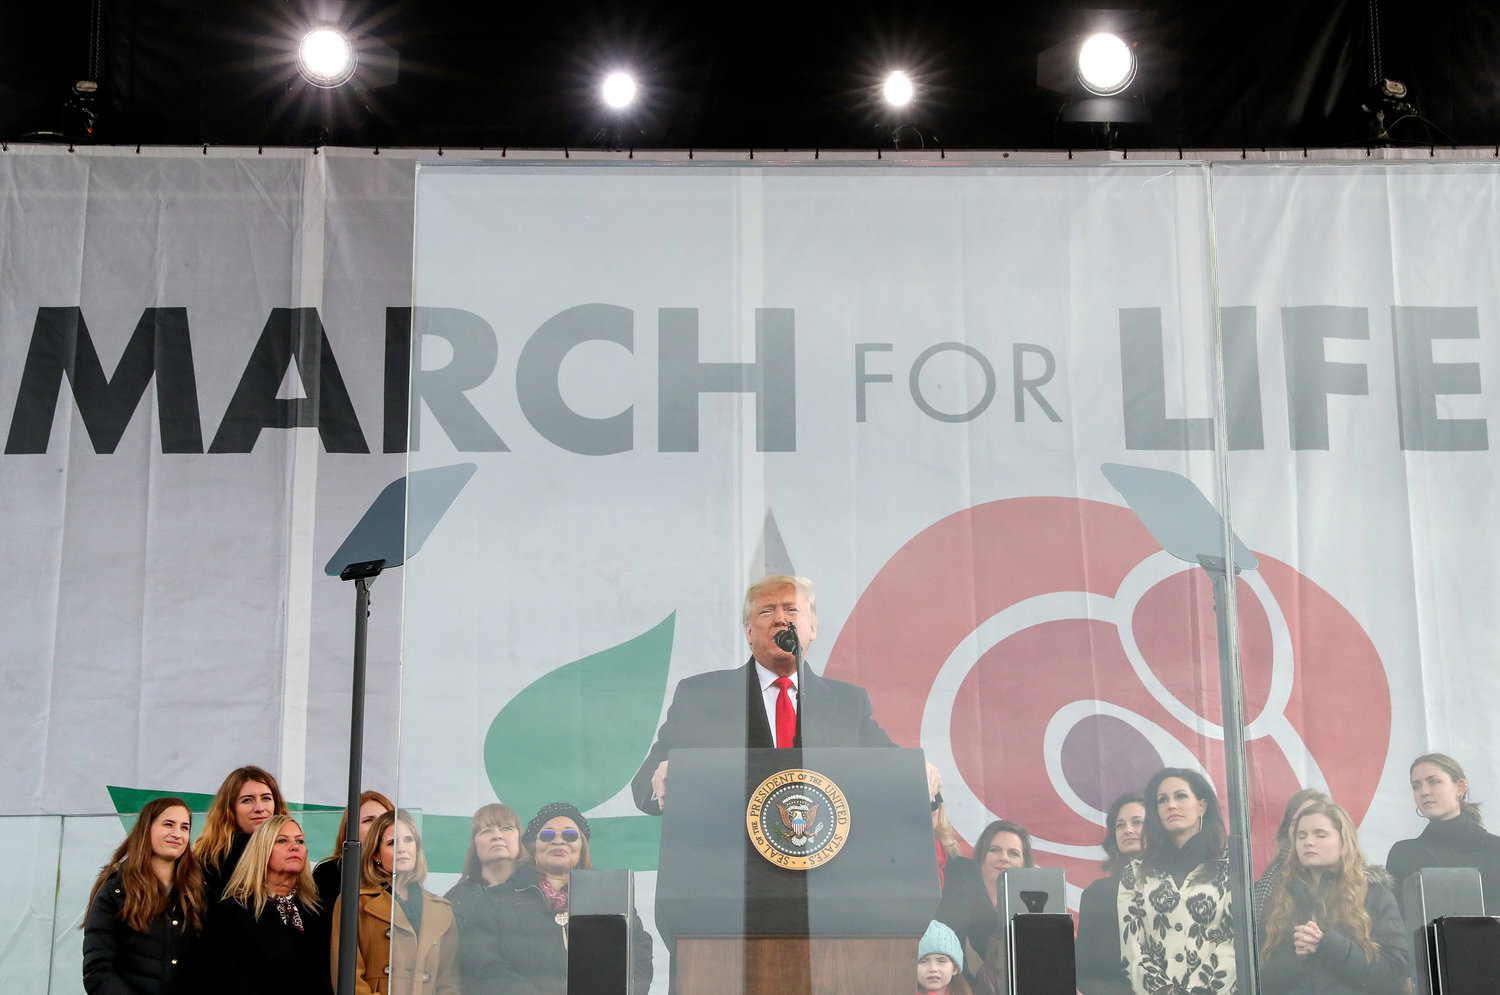 U.S. President Donald Trump addresses thousands of pro-life supporters during the 47th annual March for Life in Washington Jan. 24, 2020. He is the first sitting president to address the pro-life event in person.